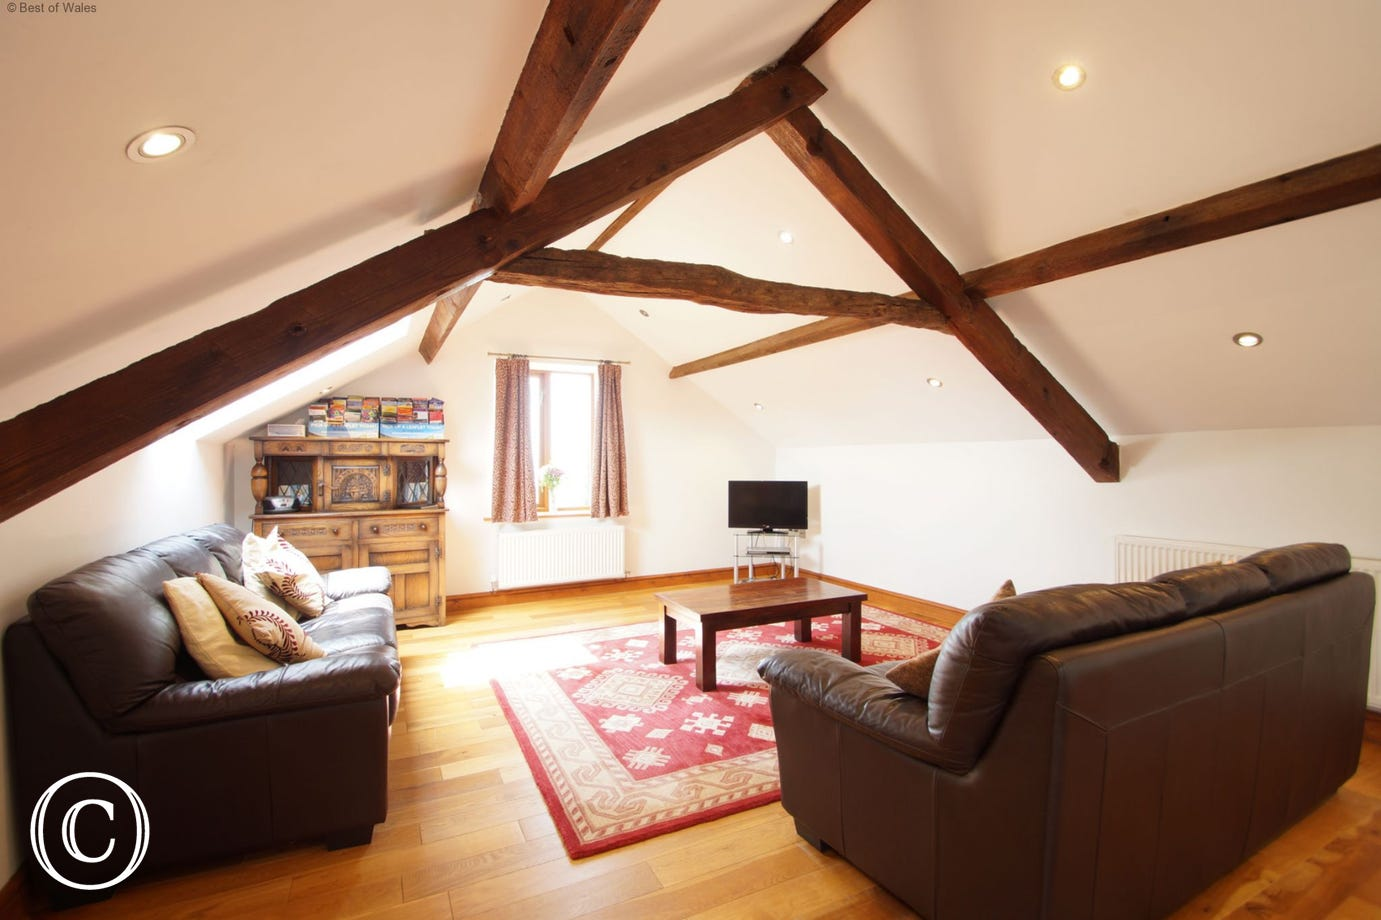 Spacious and cosy upstairs lounge at Beudy Taicroesion holiday cottage